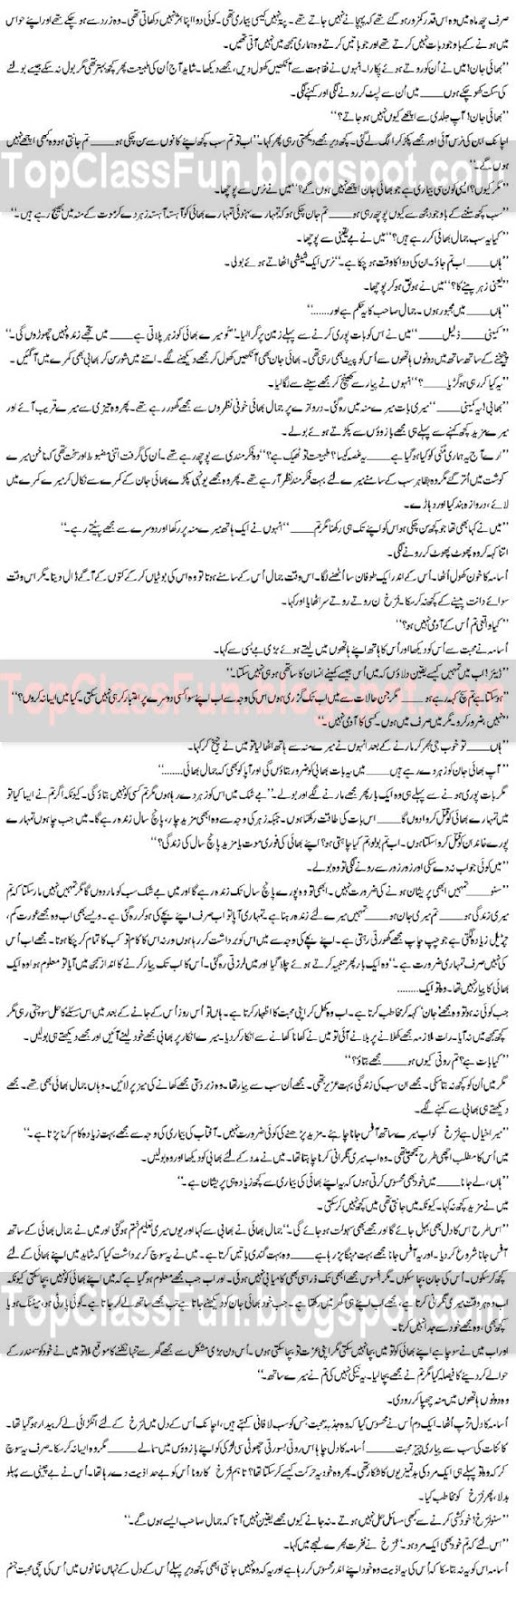 Romantic Urdu Novel - MOHABBAT &#8211; By Shahina Chanda Mehtab Page 7